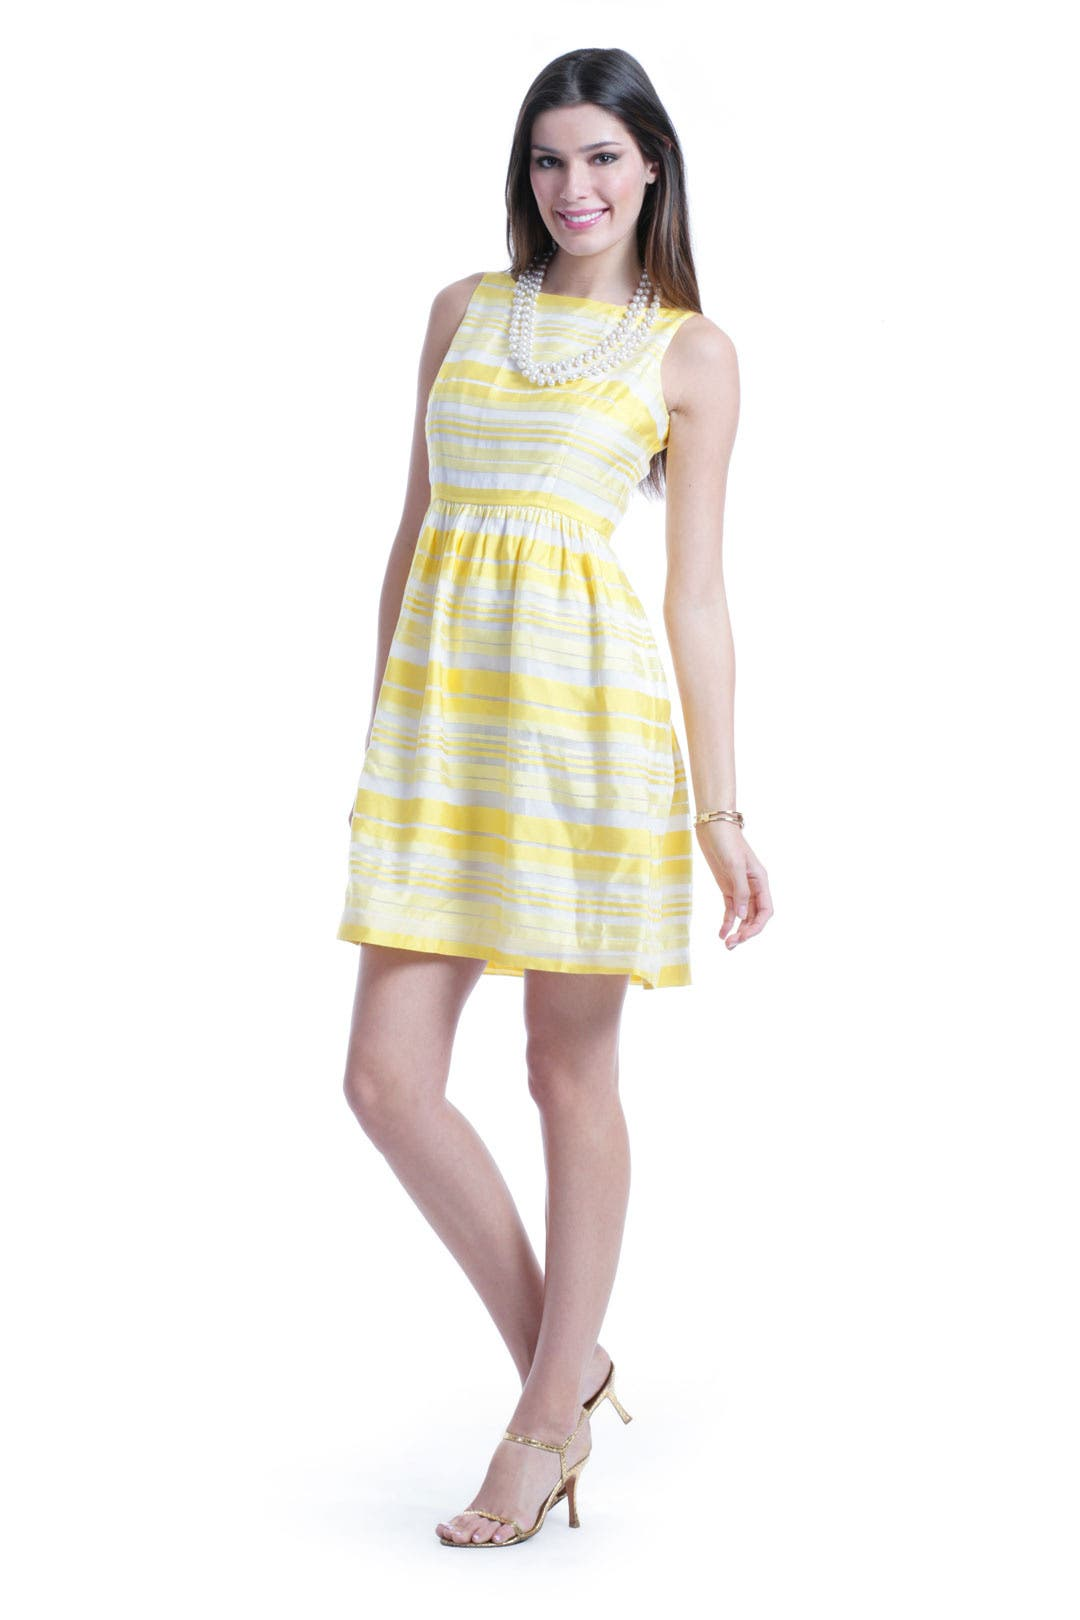 Lemon Sorbet Dress by Lilly Pulitzer